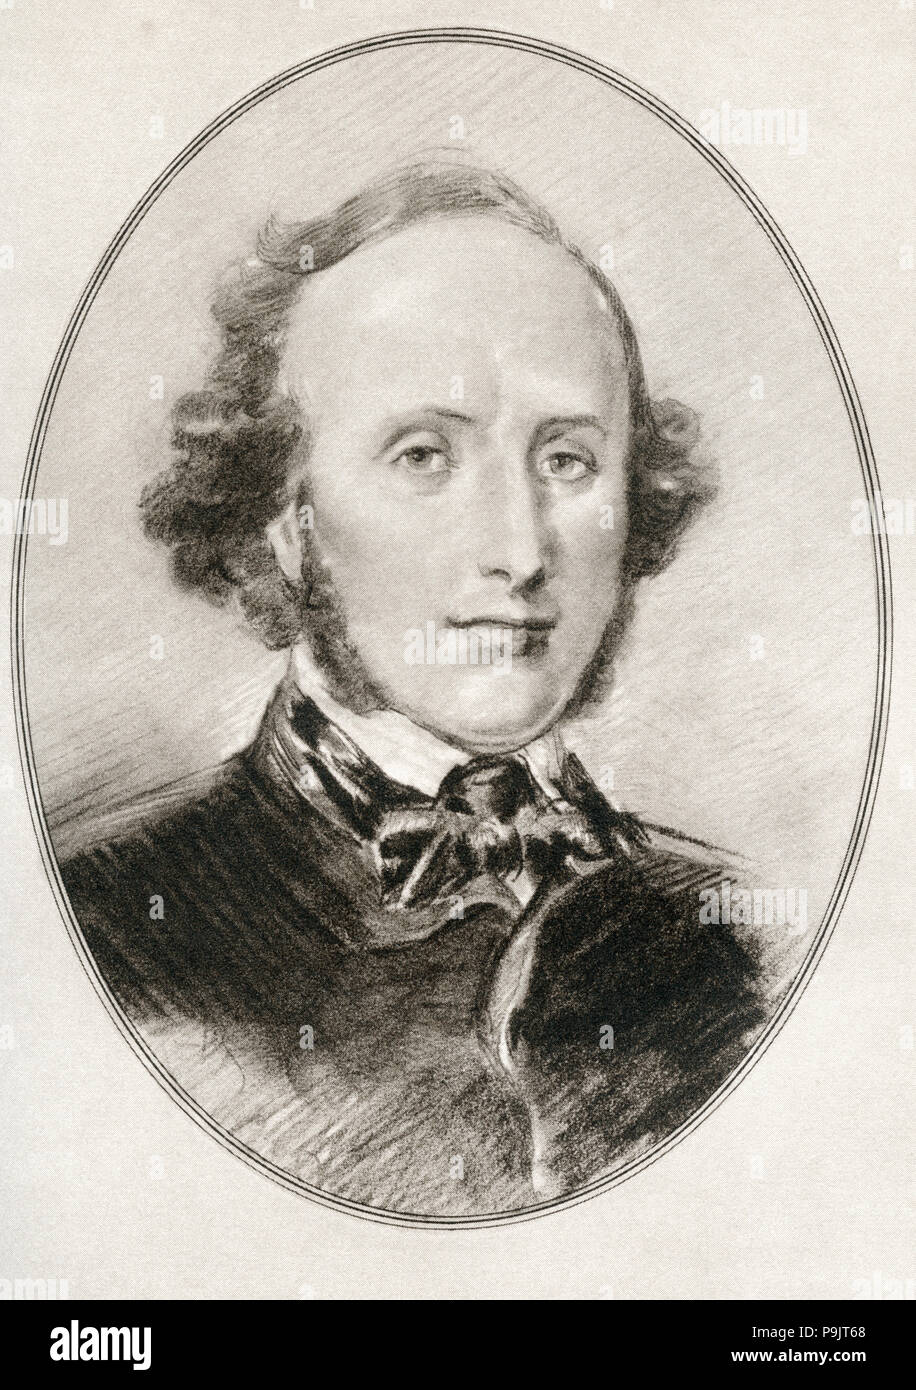 Jakob Ludwig Felix Mendelssohn Bartholdy, 1809 –1847, born as Felix Mendelssohn.  German composer, pianist, organist and conductor of the early romantic period. Illustration by Gordon Ross, American artist and illustrator (1873-1946), from Living Biographies of Great Composers. - Stock Image